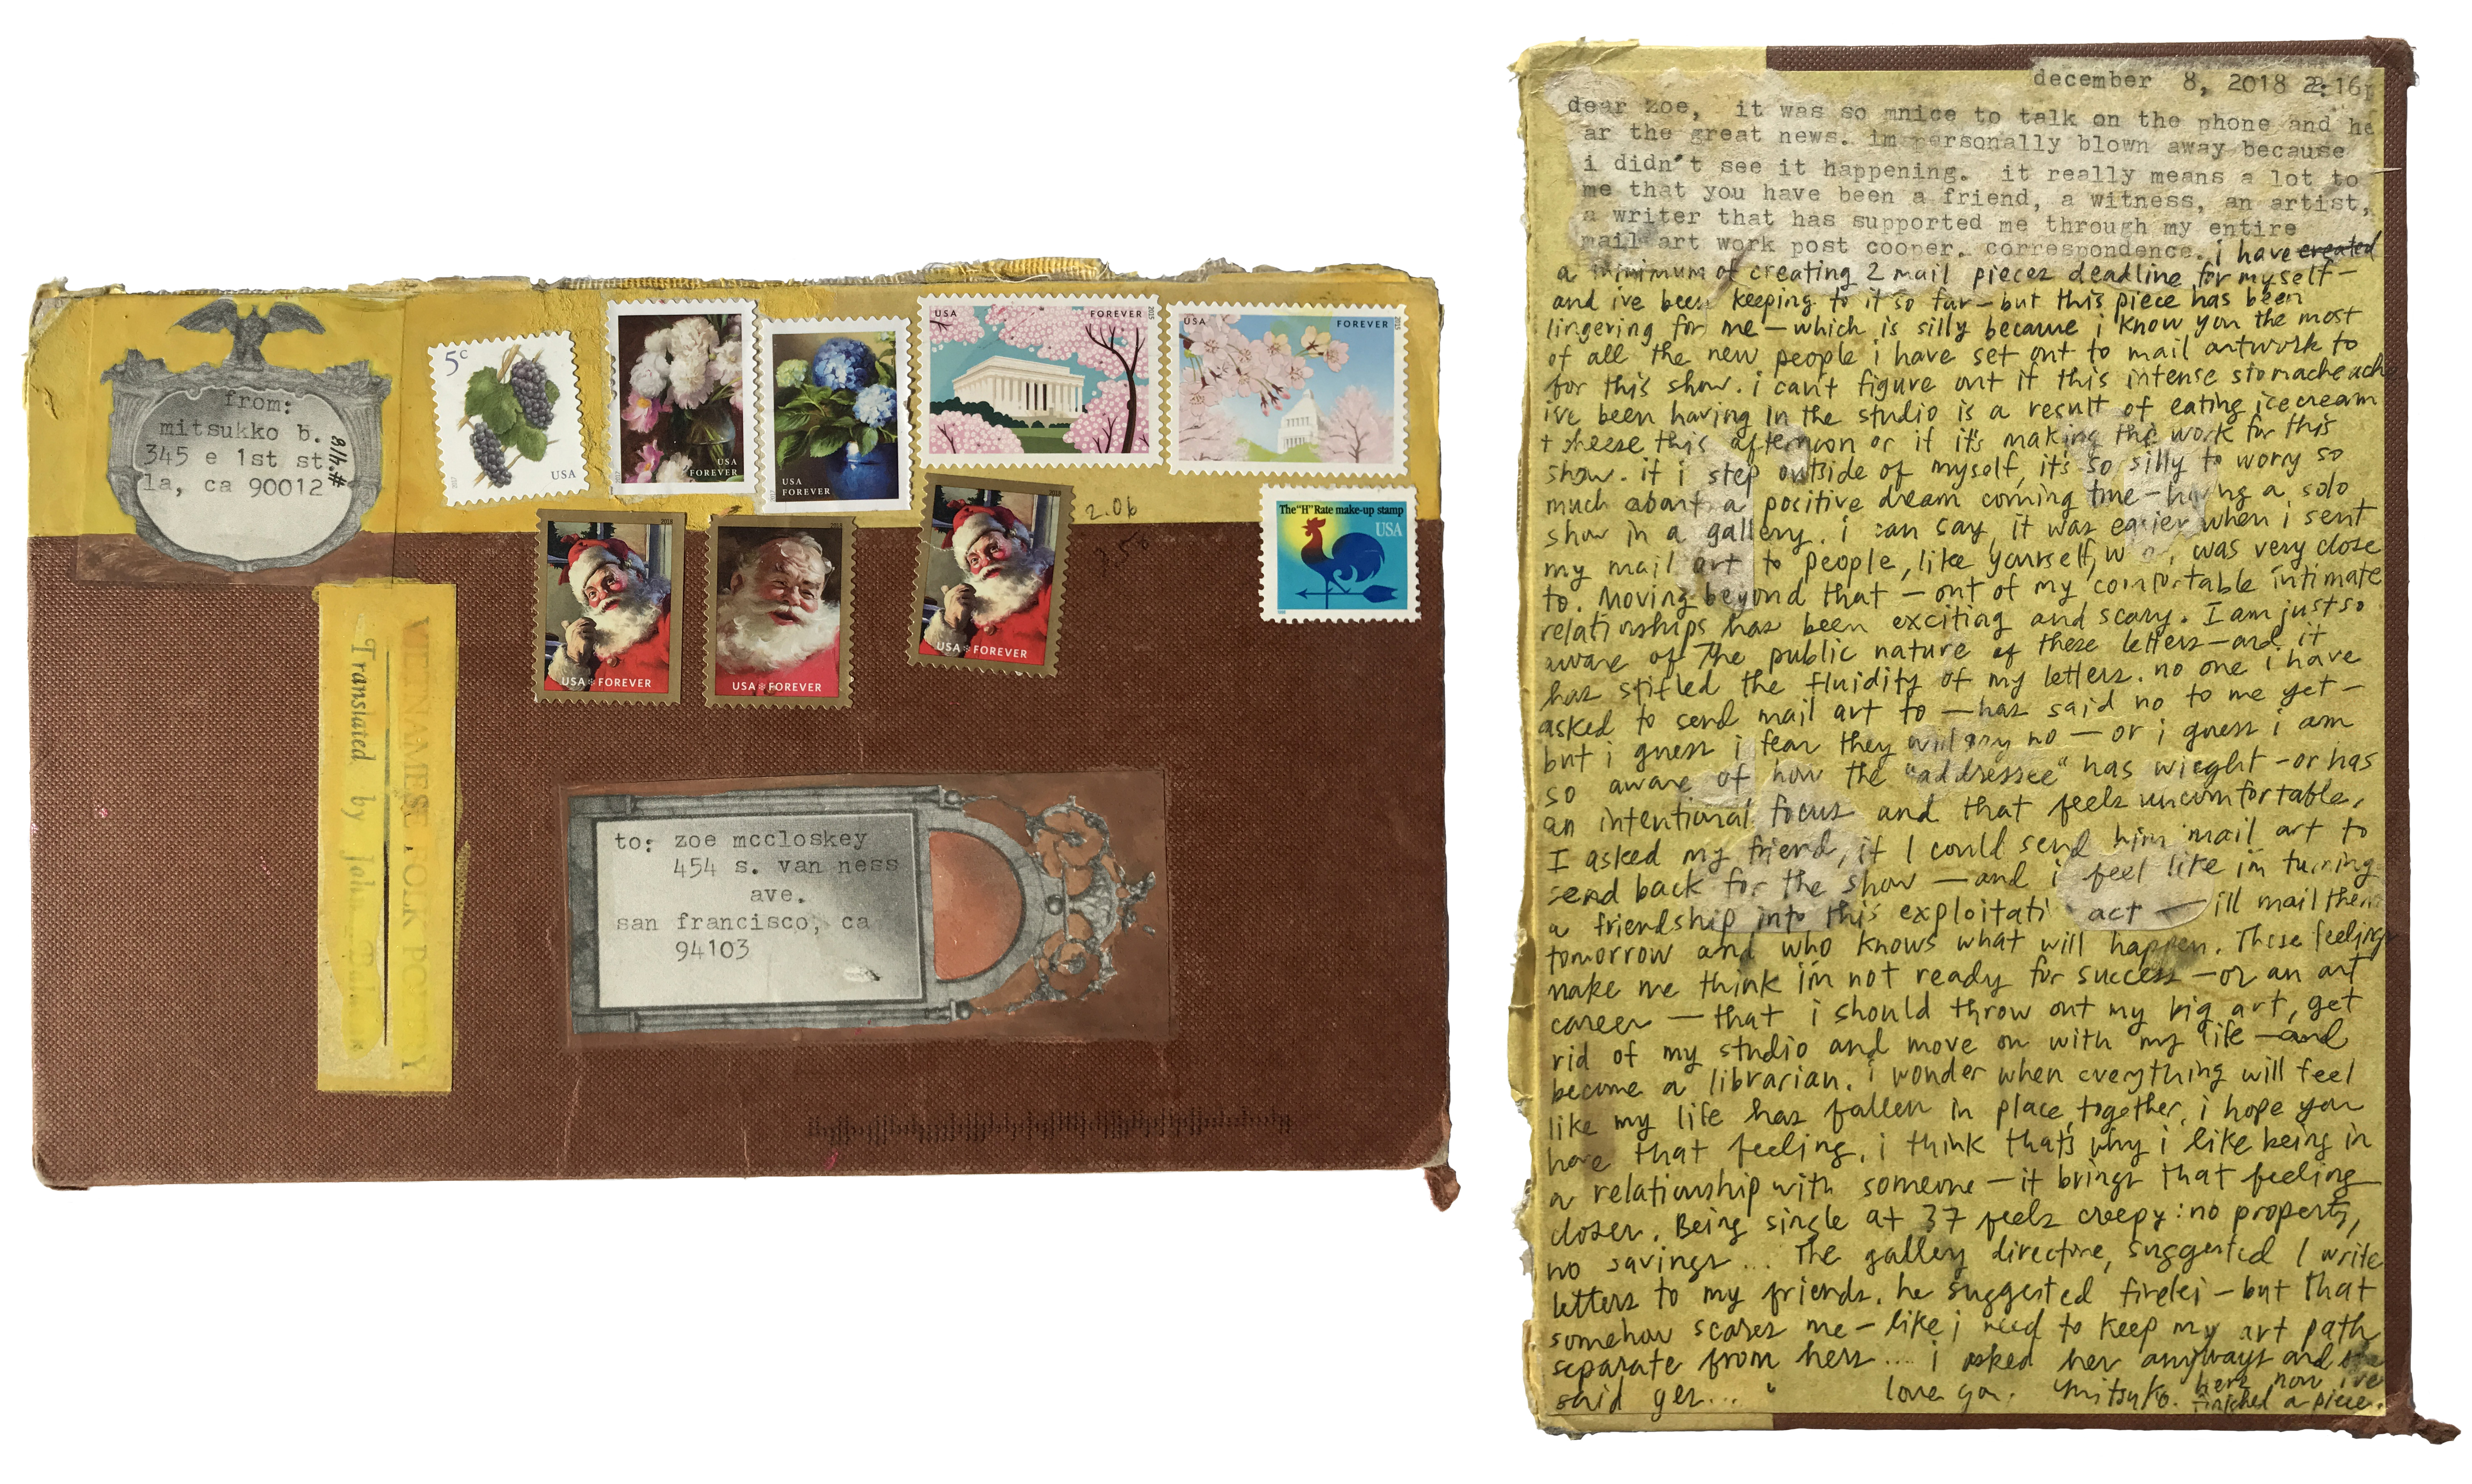 Mitsuko Brooks. <em>Mail to Z.M., Dec. 8, 2018</em>, 2018. Ink, postage stamps, and paper collaged onto detached book cover, 8 3/4 x 5 3/4 inches (22.3 x 14.5 cm)